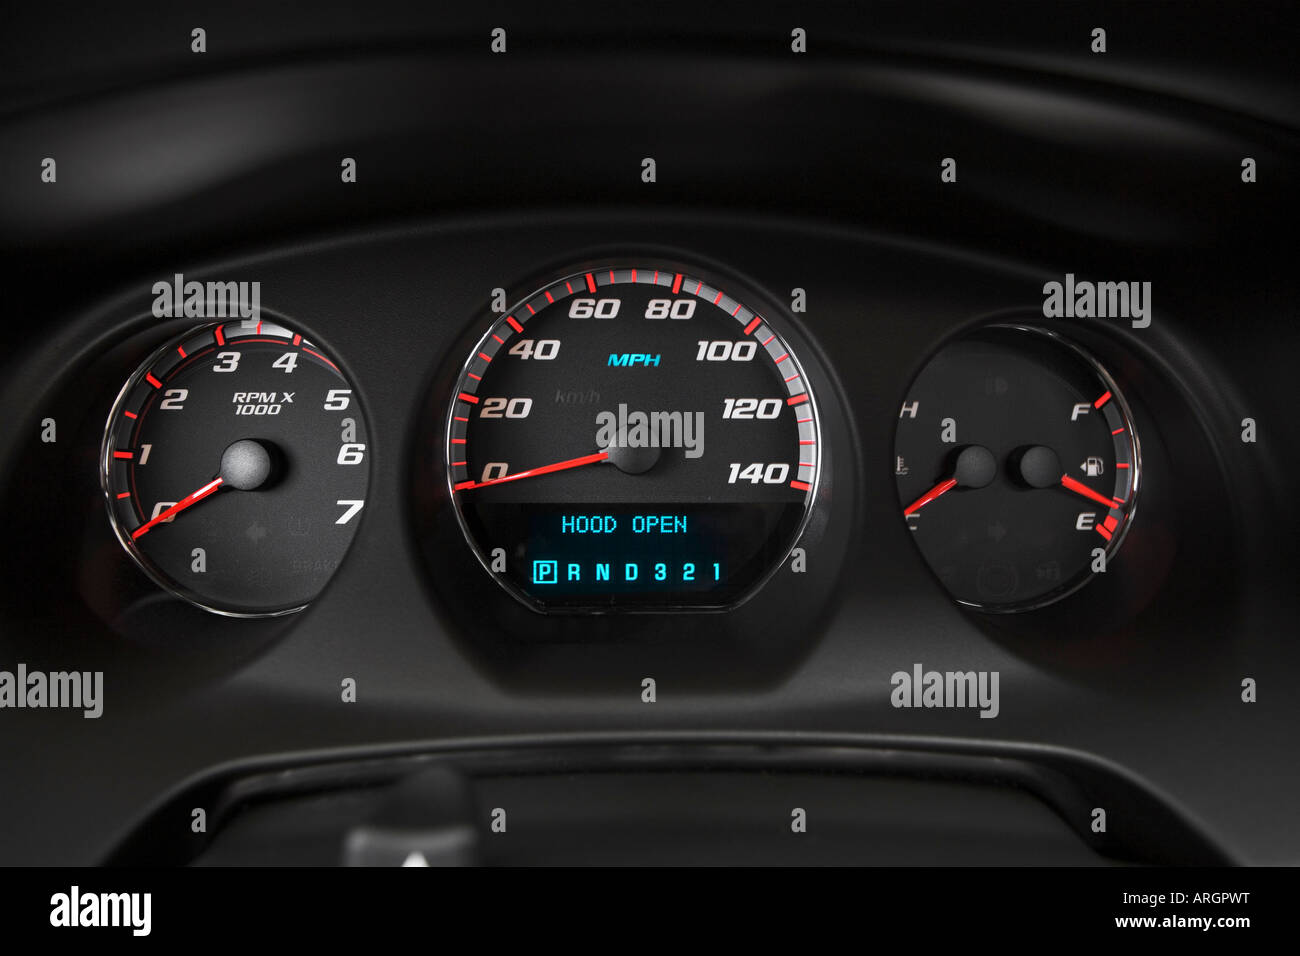 Chevrolet Monte Carlo Ss Stock Photos 2007 Fuel Filter In Black Speedometer Tachometer Image